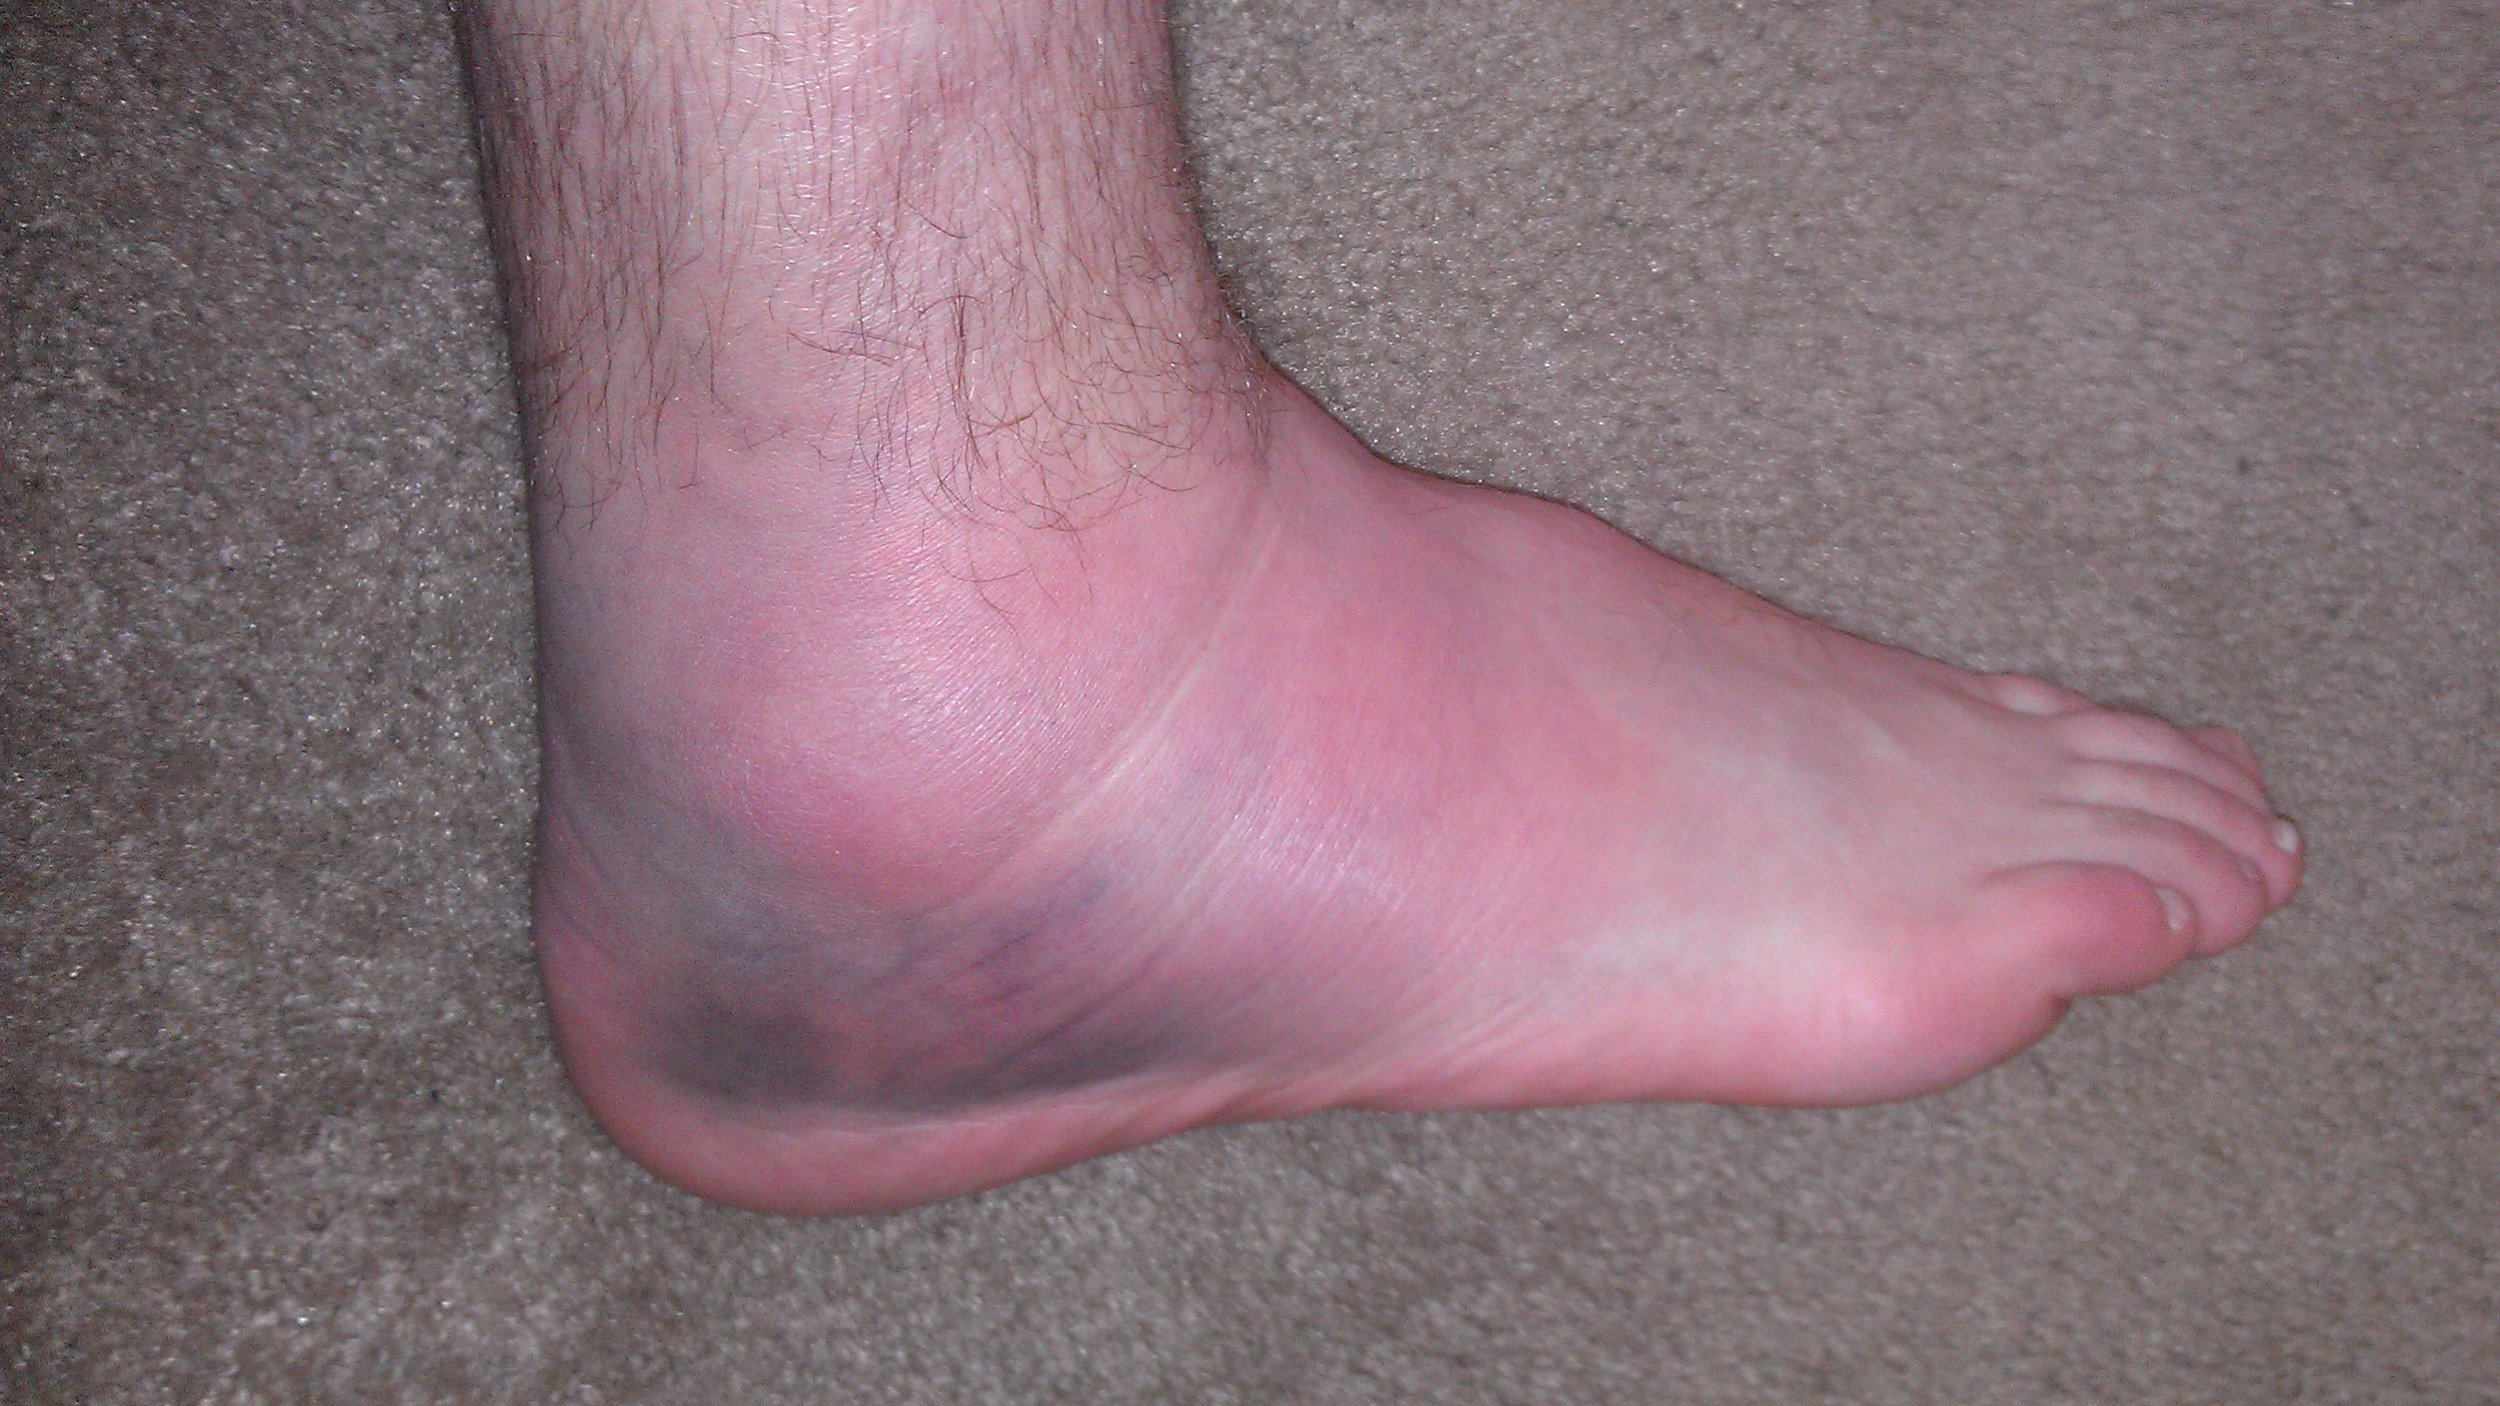 My super swollen ankle after a trail in Moab swept my leg, hard. Gross. If your knee looked like this you wouldn't be expecting to get back to sport in two weeks. Why assume that is ok for the ankle?